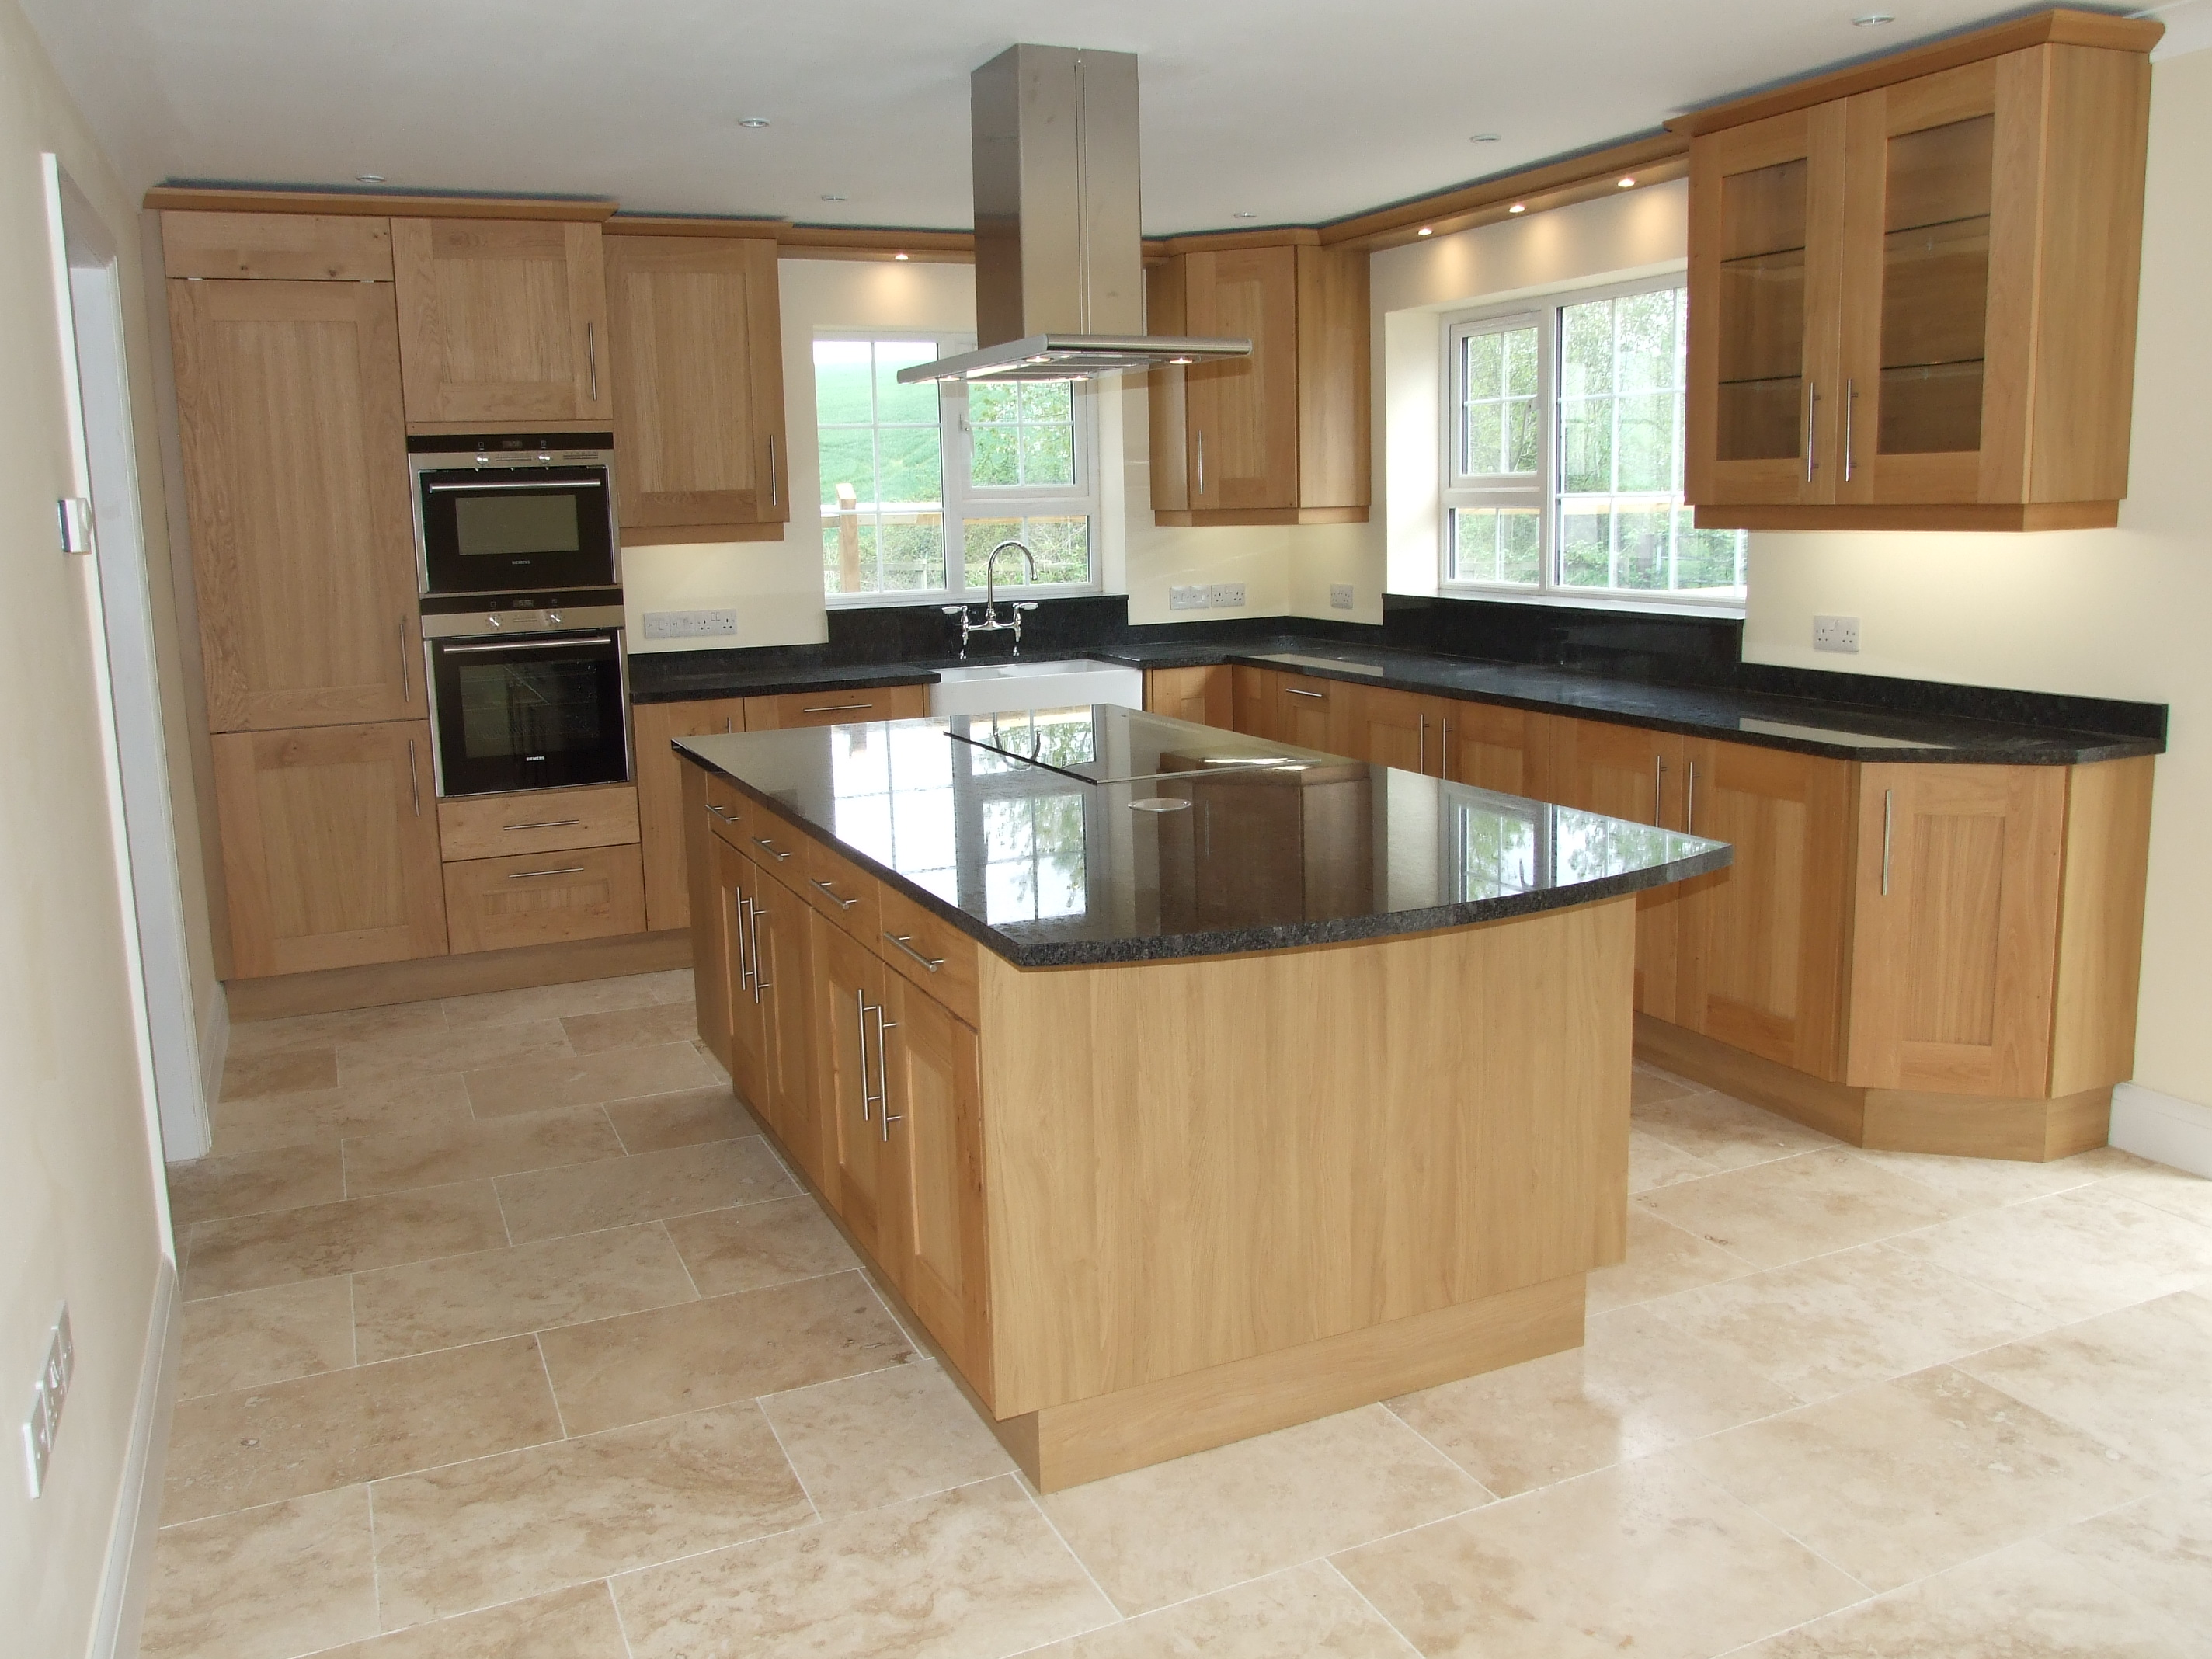 Kitchen and Bathroom refitting services in Watford